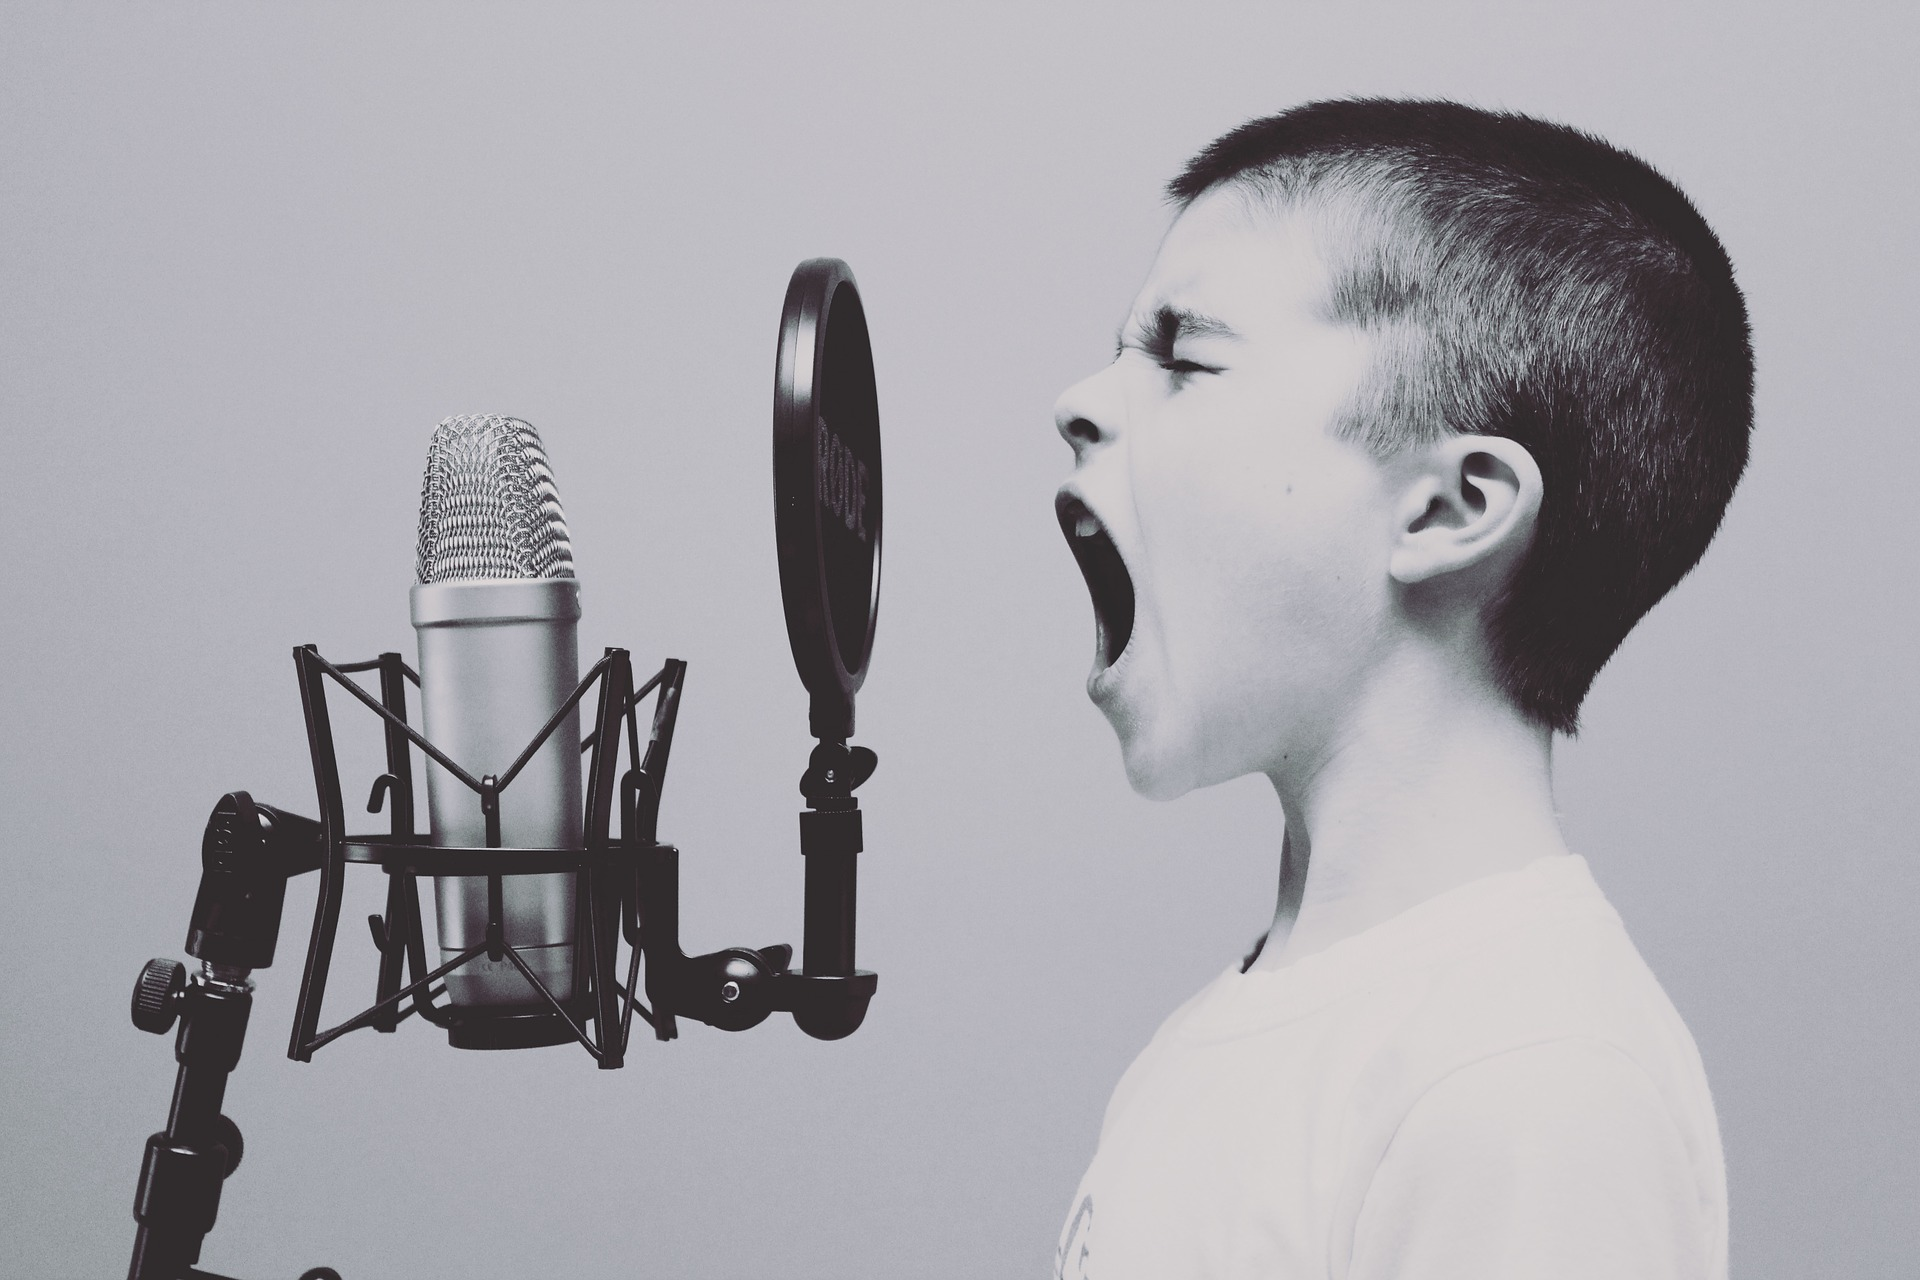 A boy is screaming into a microphone